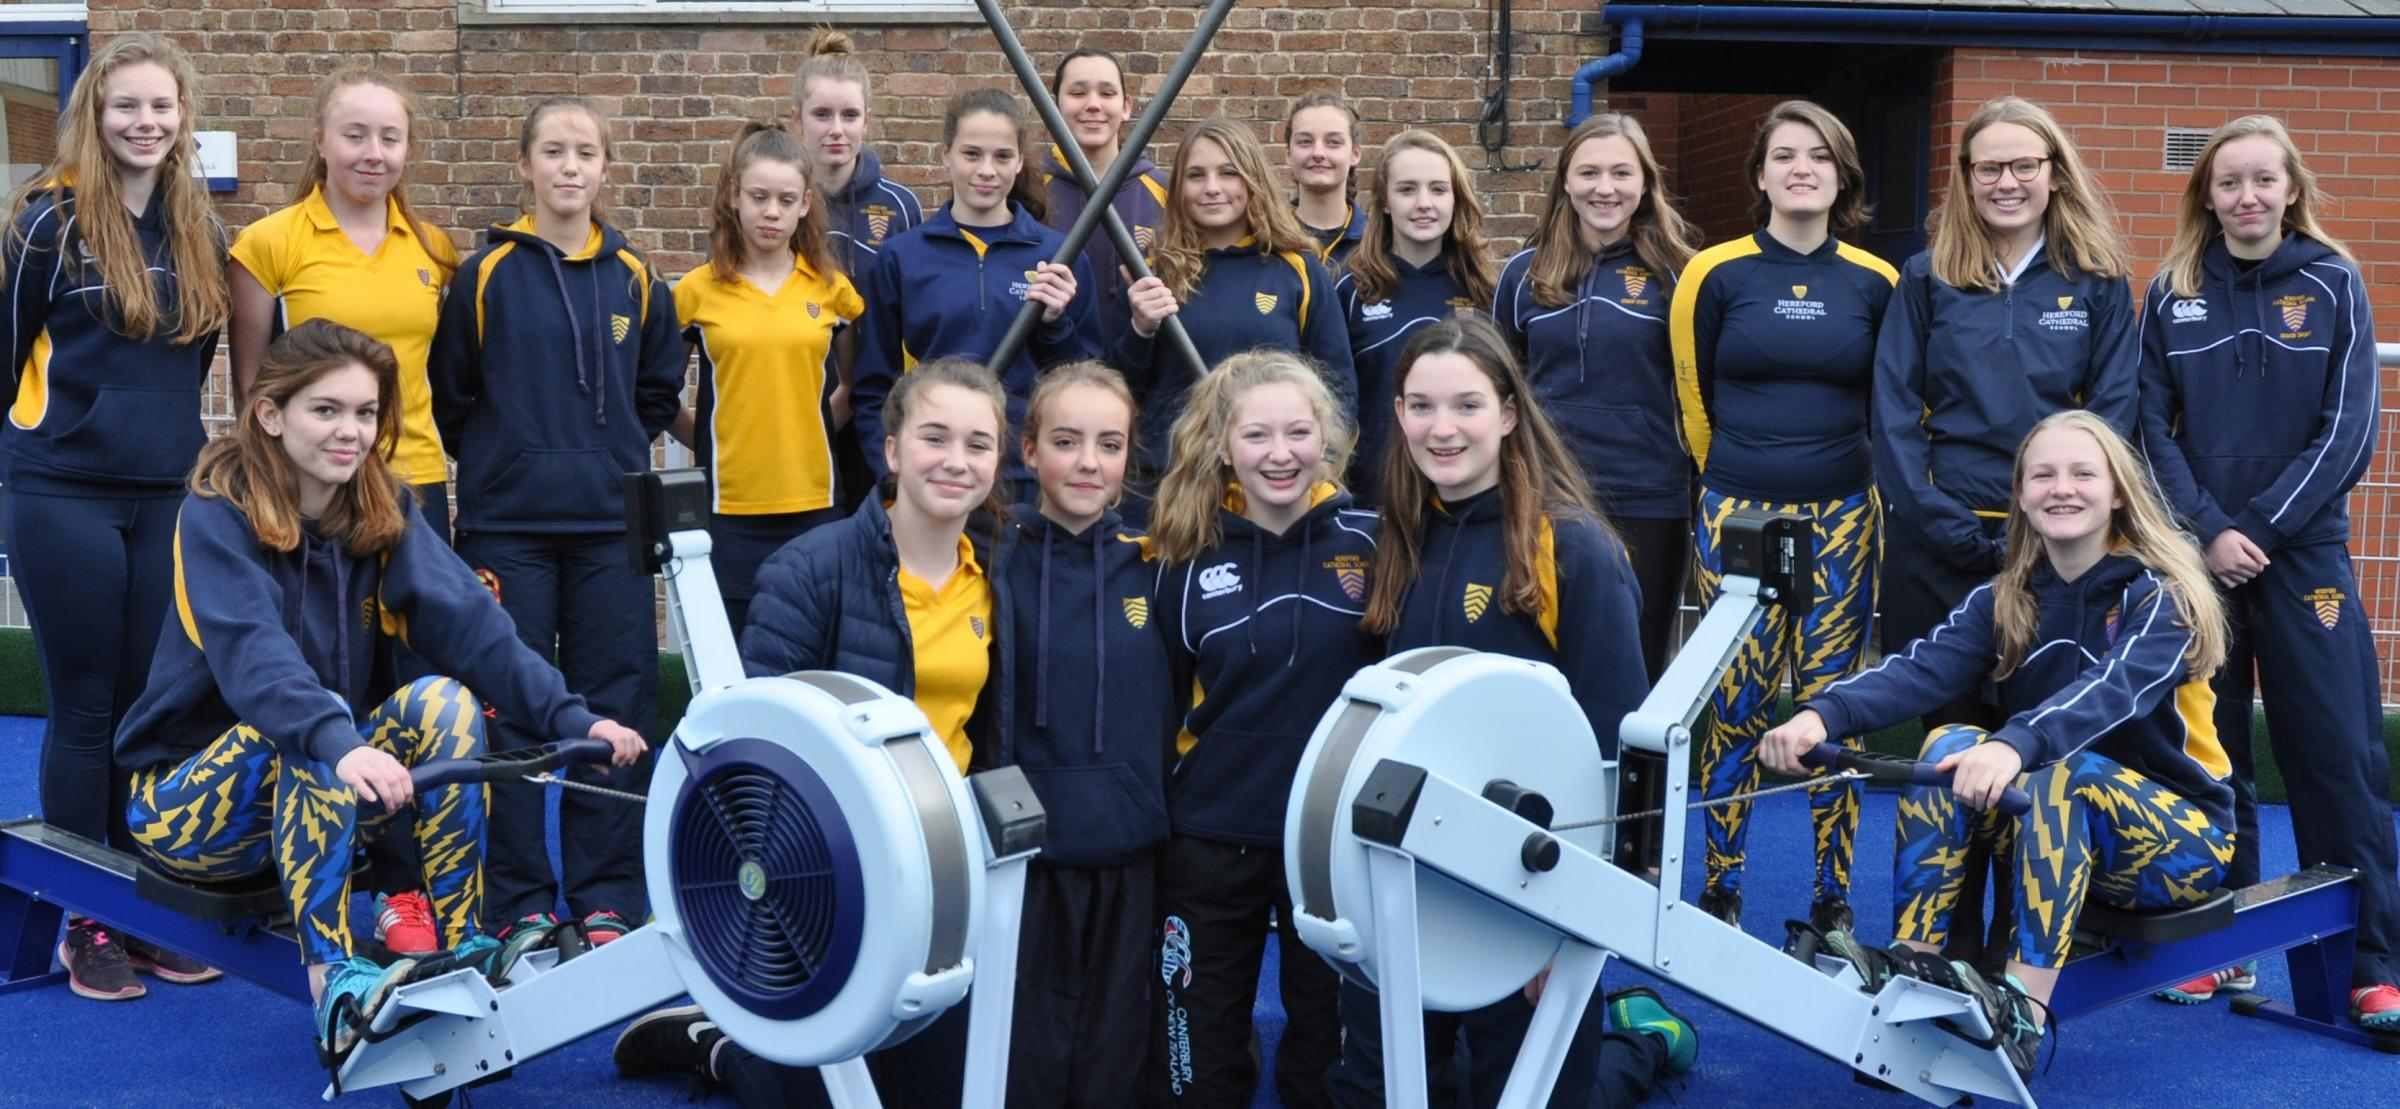 The girls of Hereford Cathedral School Boat Club